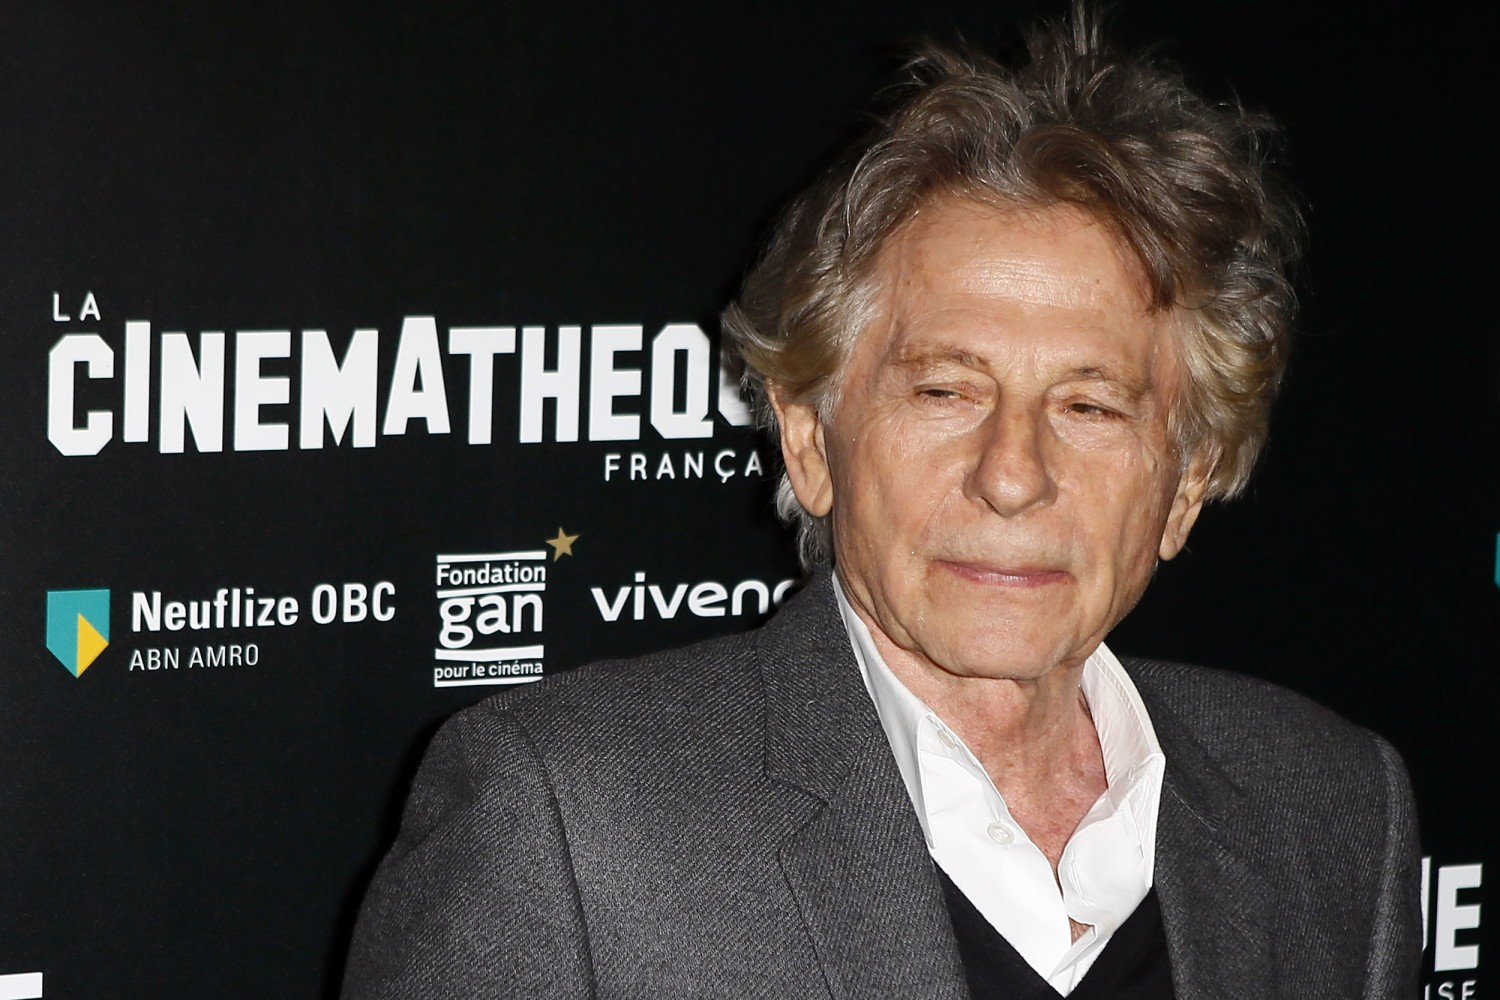 roman polanski Filmmaker roman polanski fled the us in 1978 after pleading guilty to unlawful sex with a 13-year-old and has been living and working in europe, largely unimpeded, ever since roman polanski .